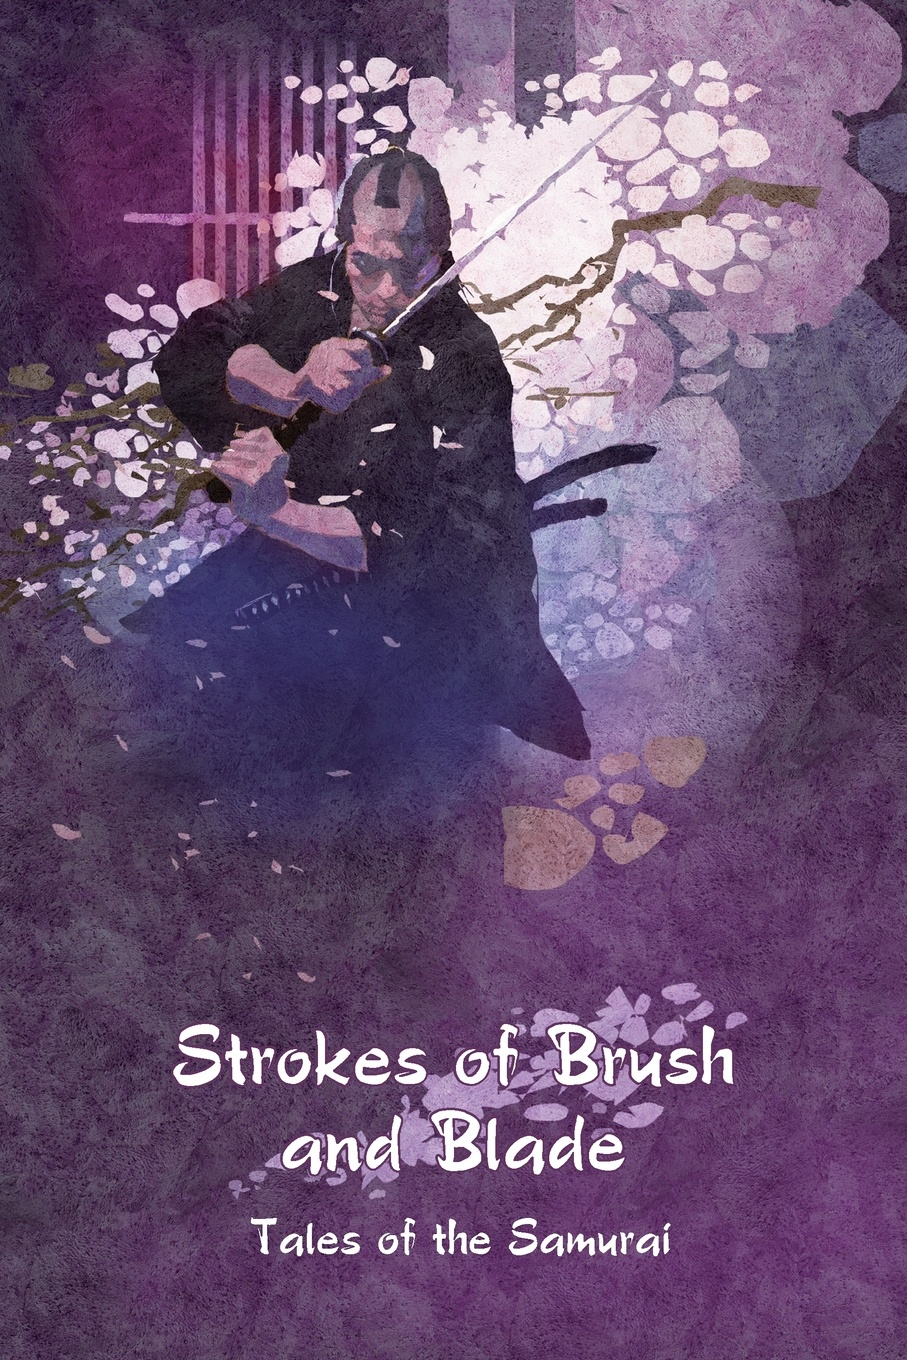 Strokes of Brush and Blade. Tales of the Samurai